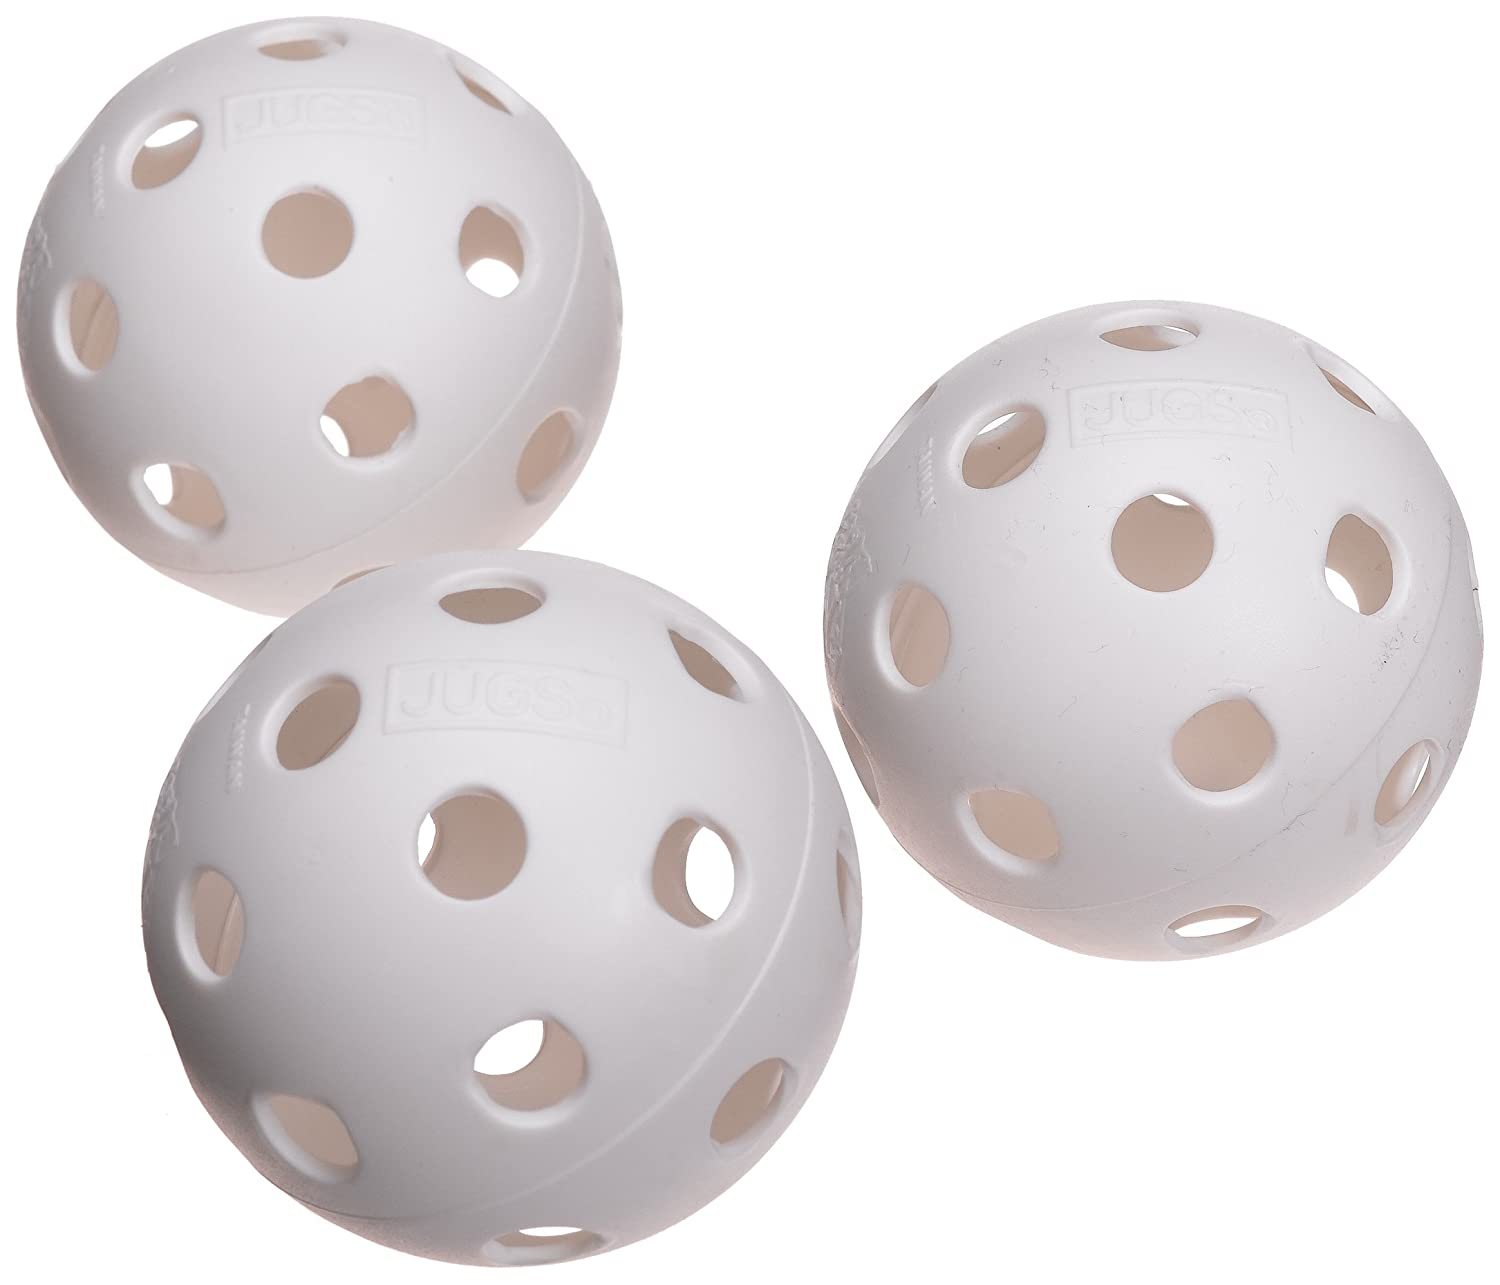 amazon com jugs white poly baseballs one dozen practice